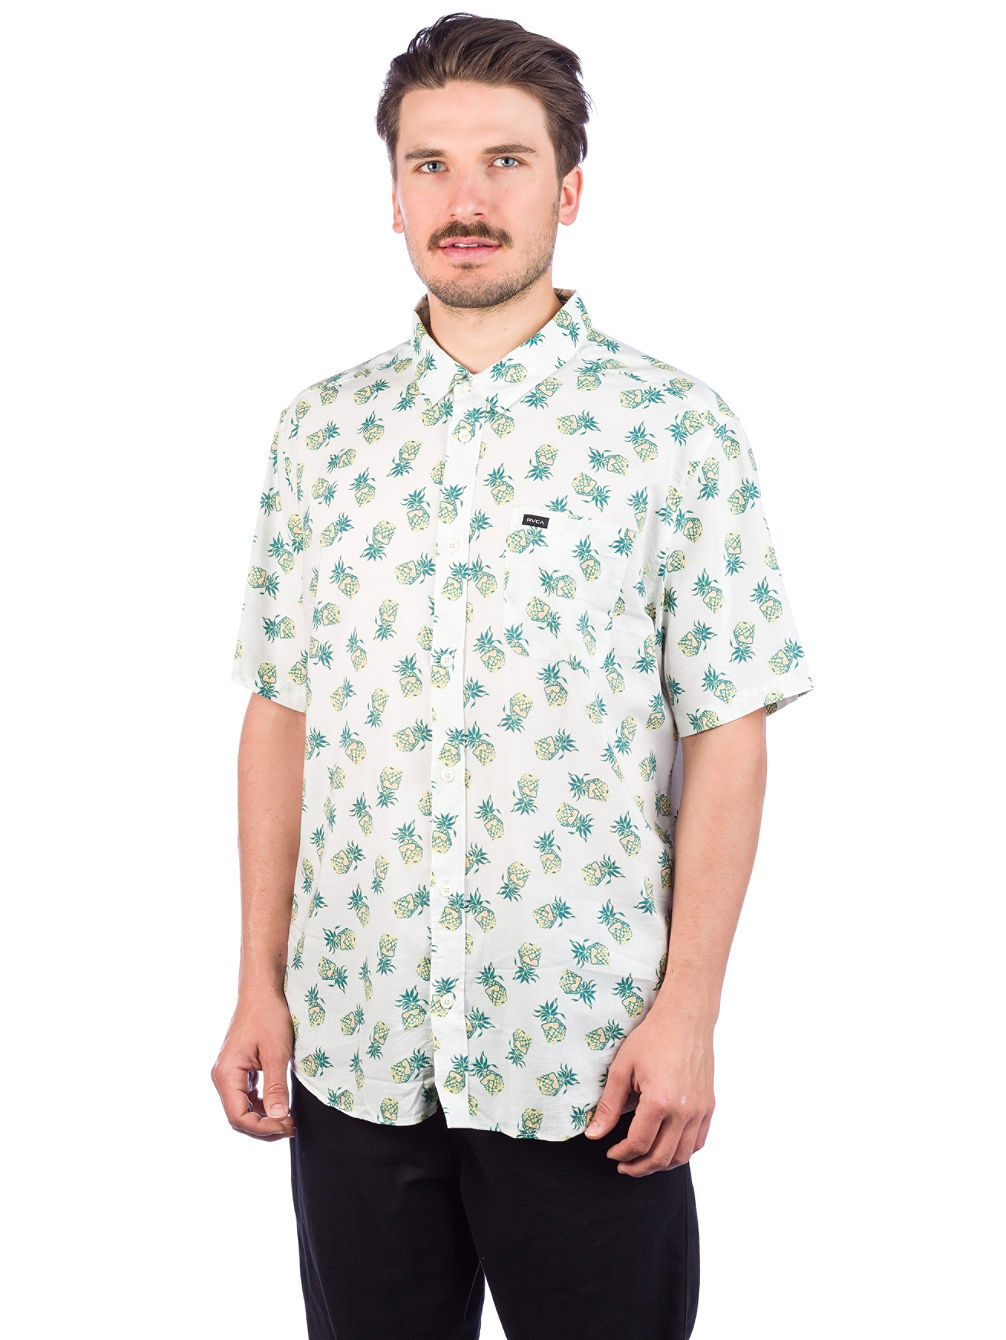 Anp Pack Shirt